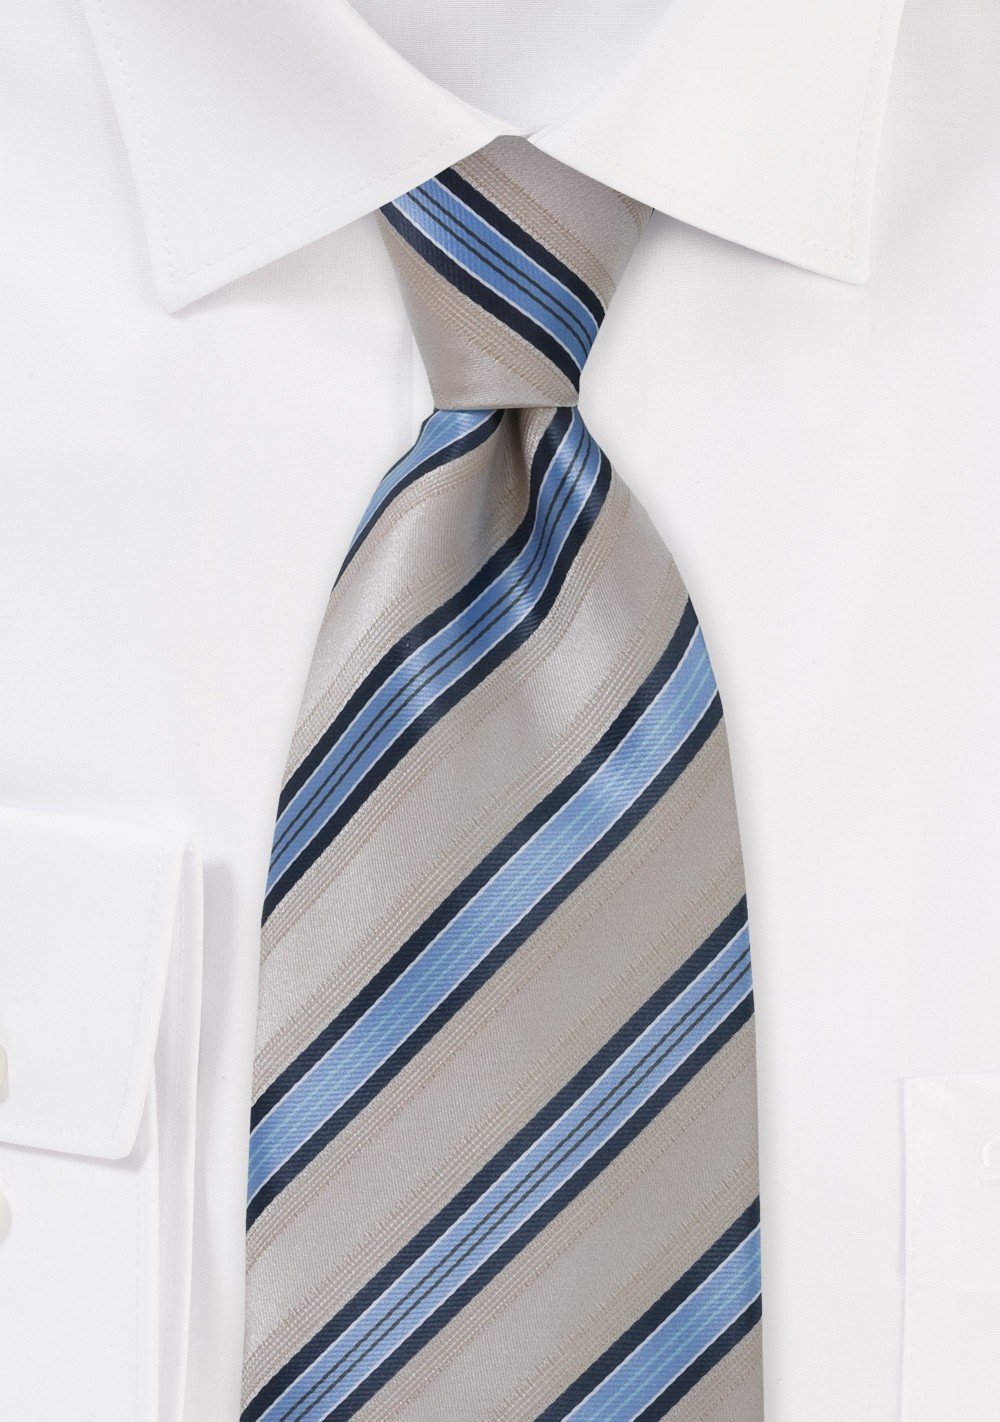 Tan and Blue Striped Tie